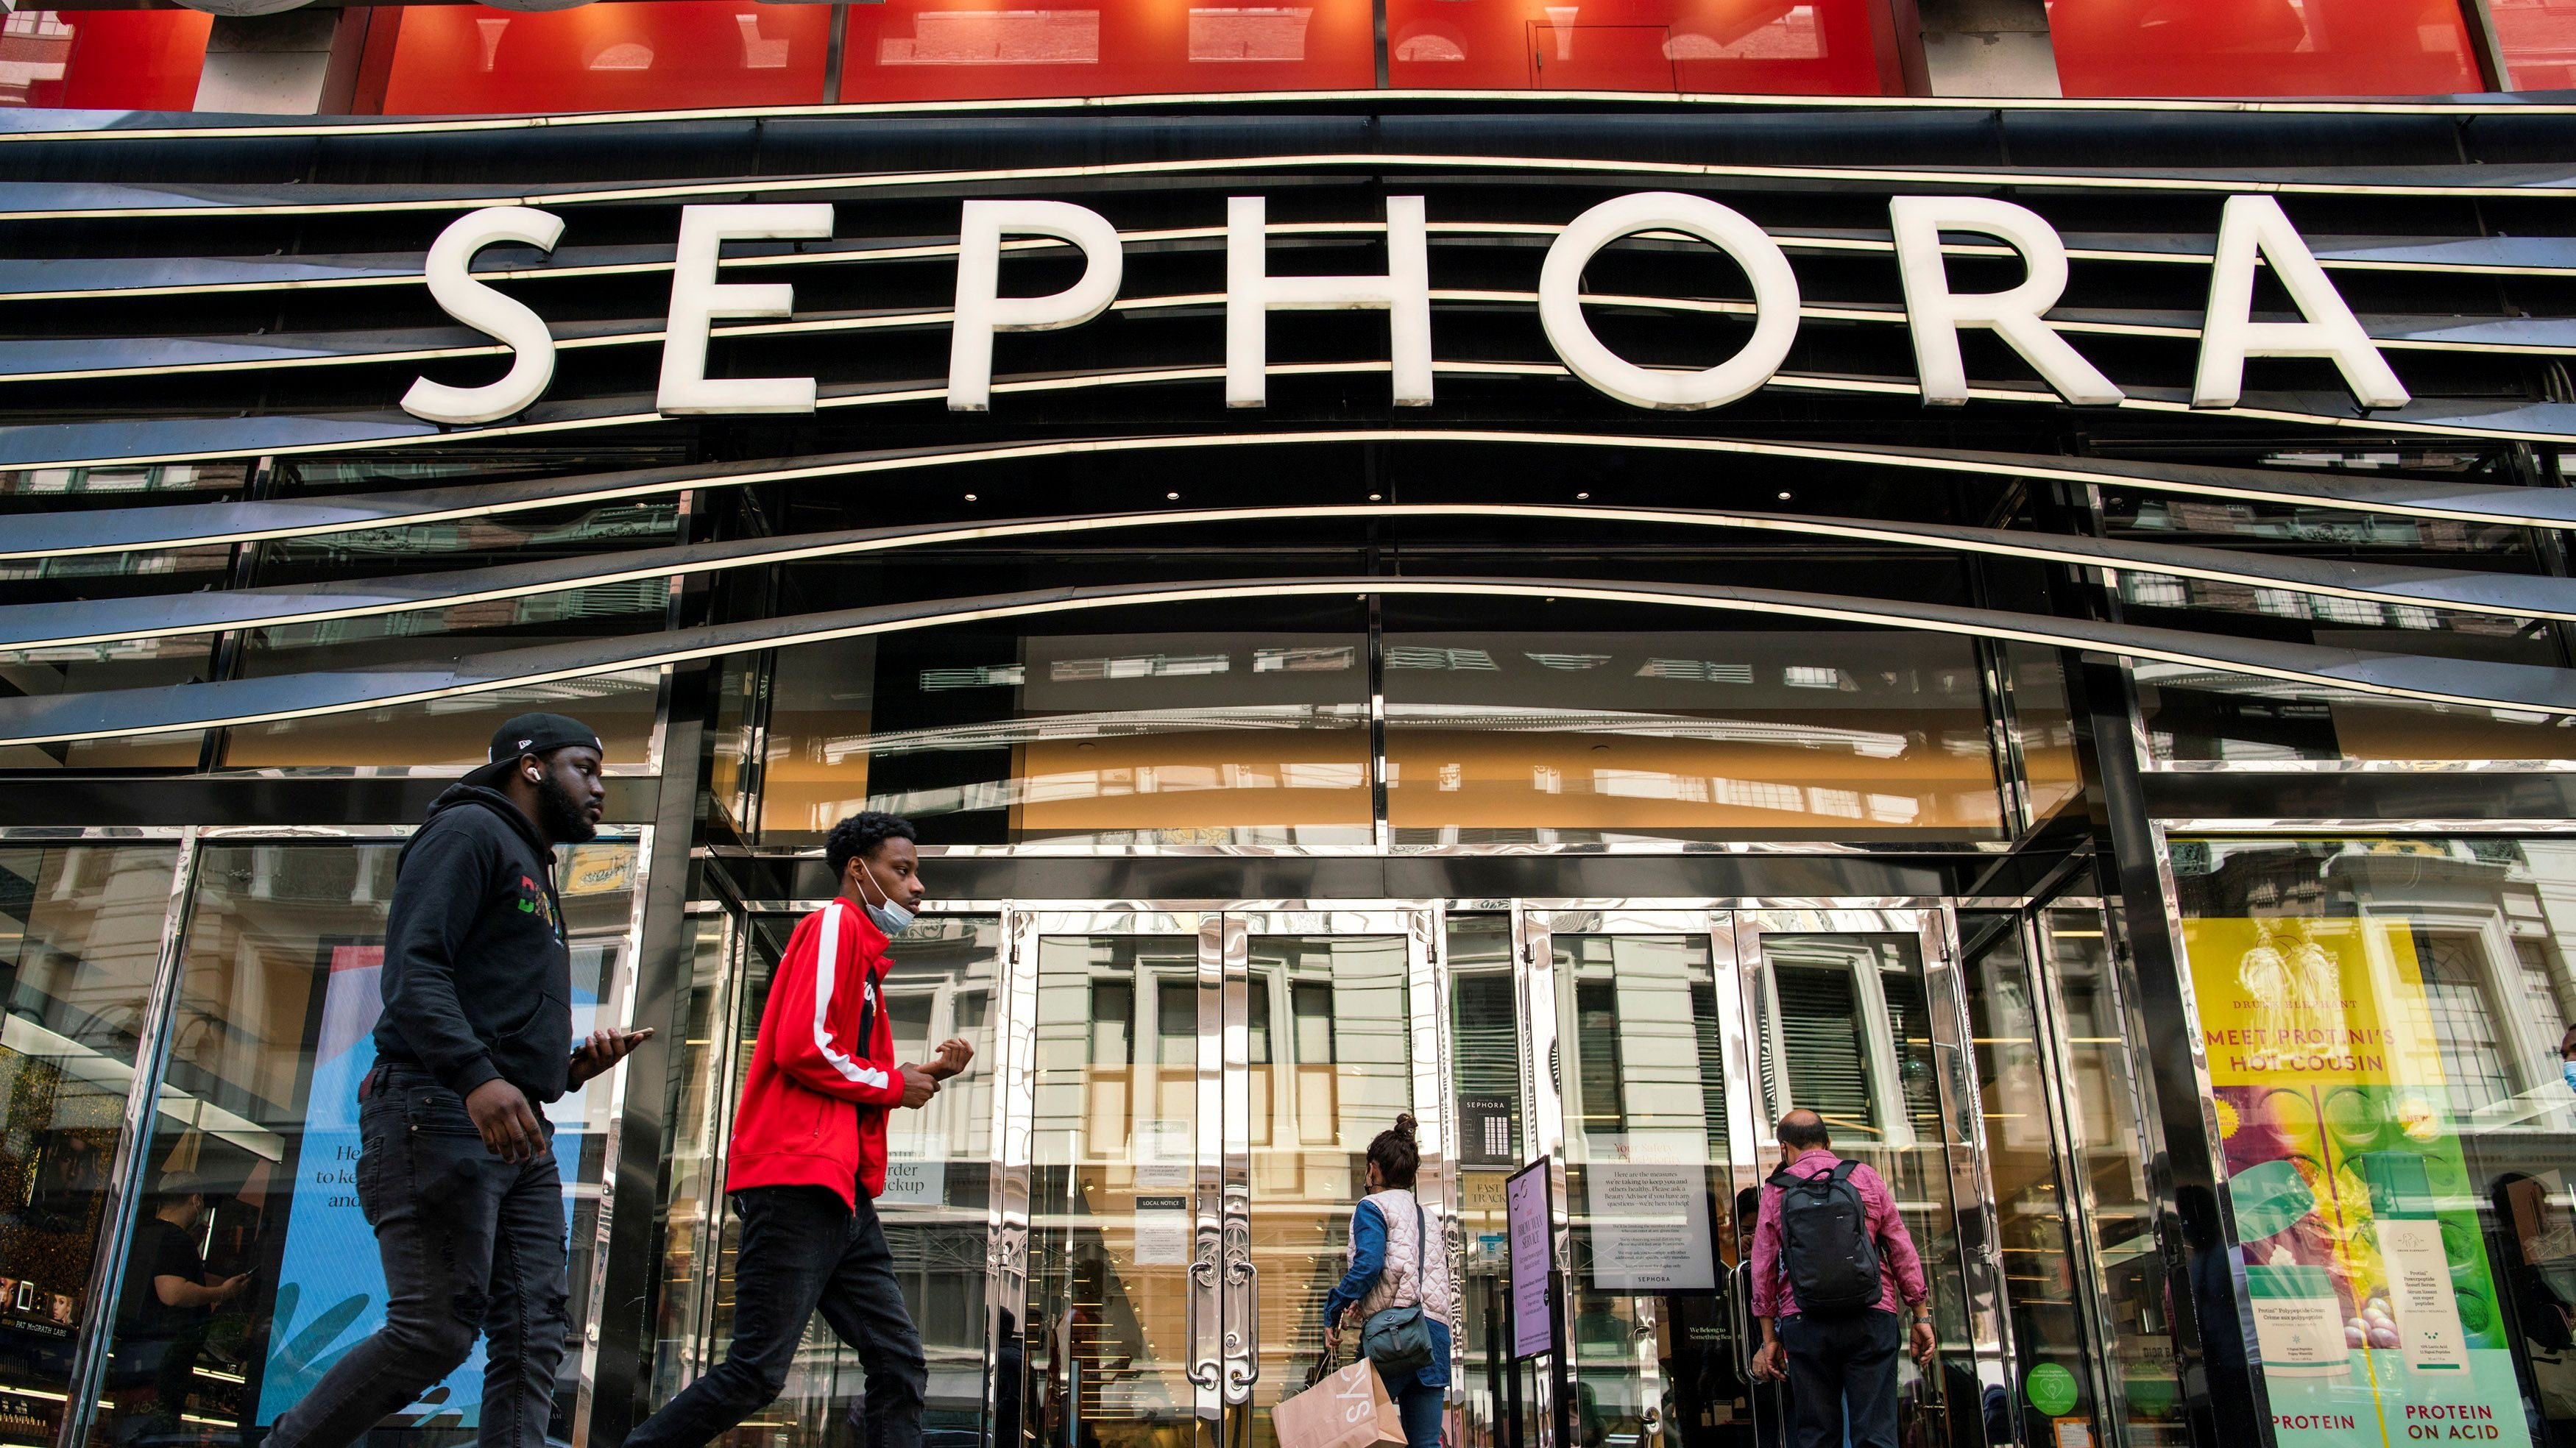 People enter a Sephora store in New York City, New York, U.S., May 20, 2021.